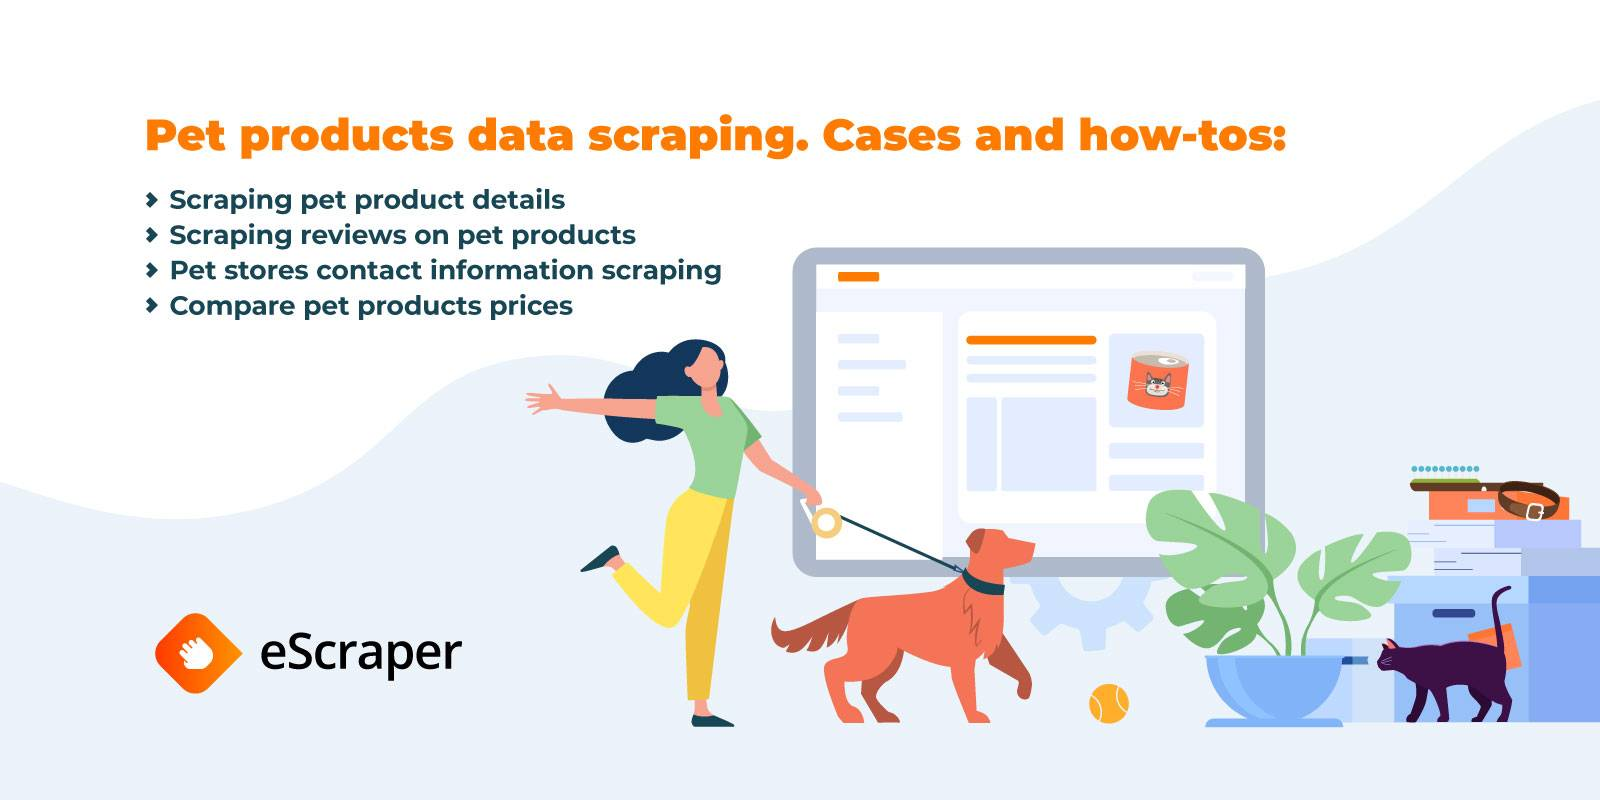 Pet products data scraping: cases and how-tos